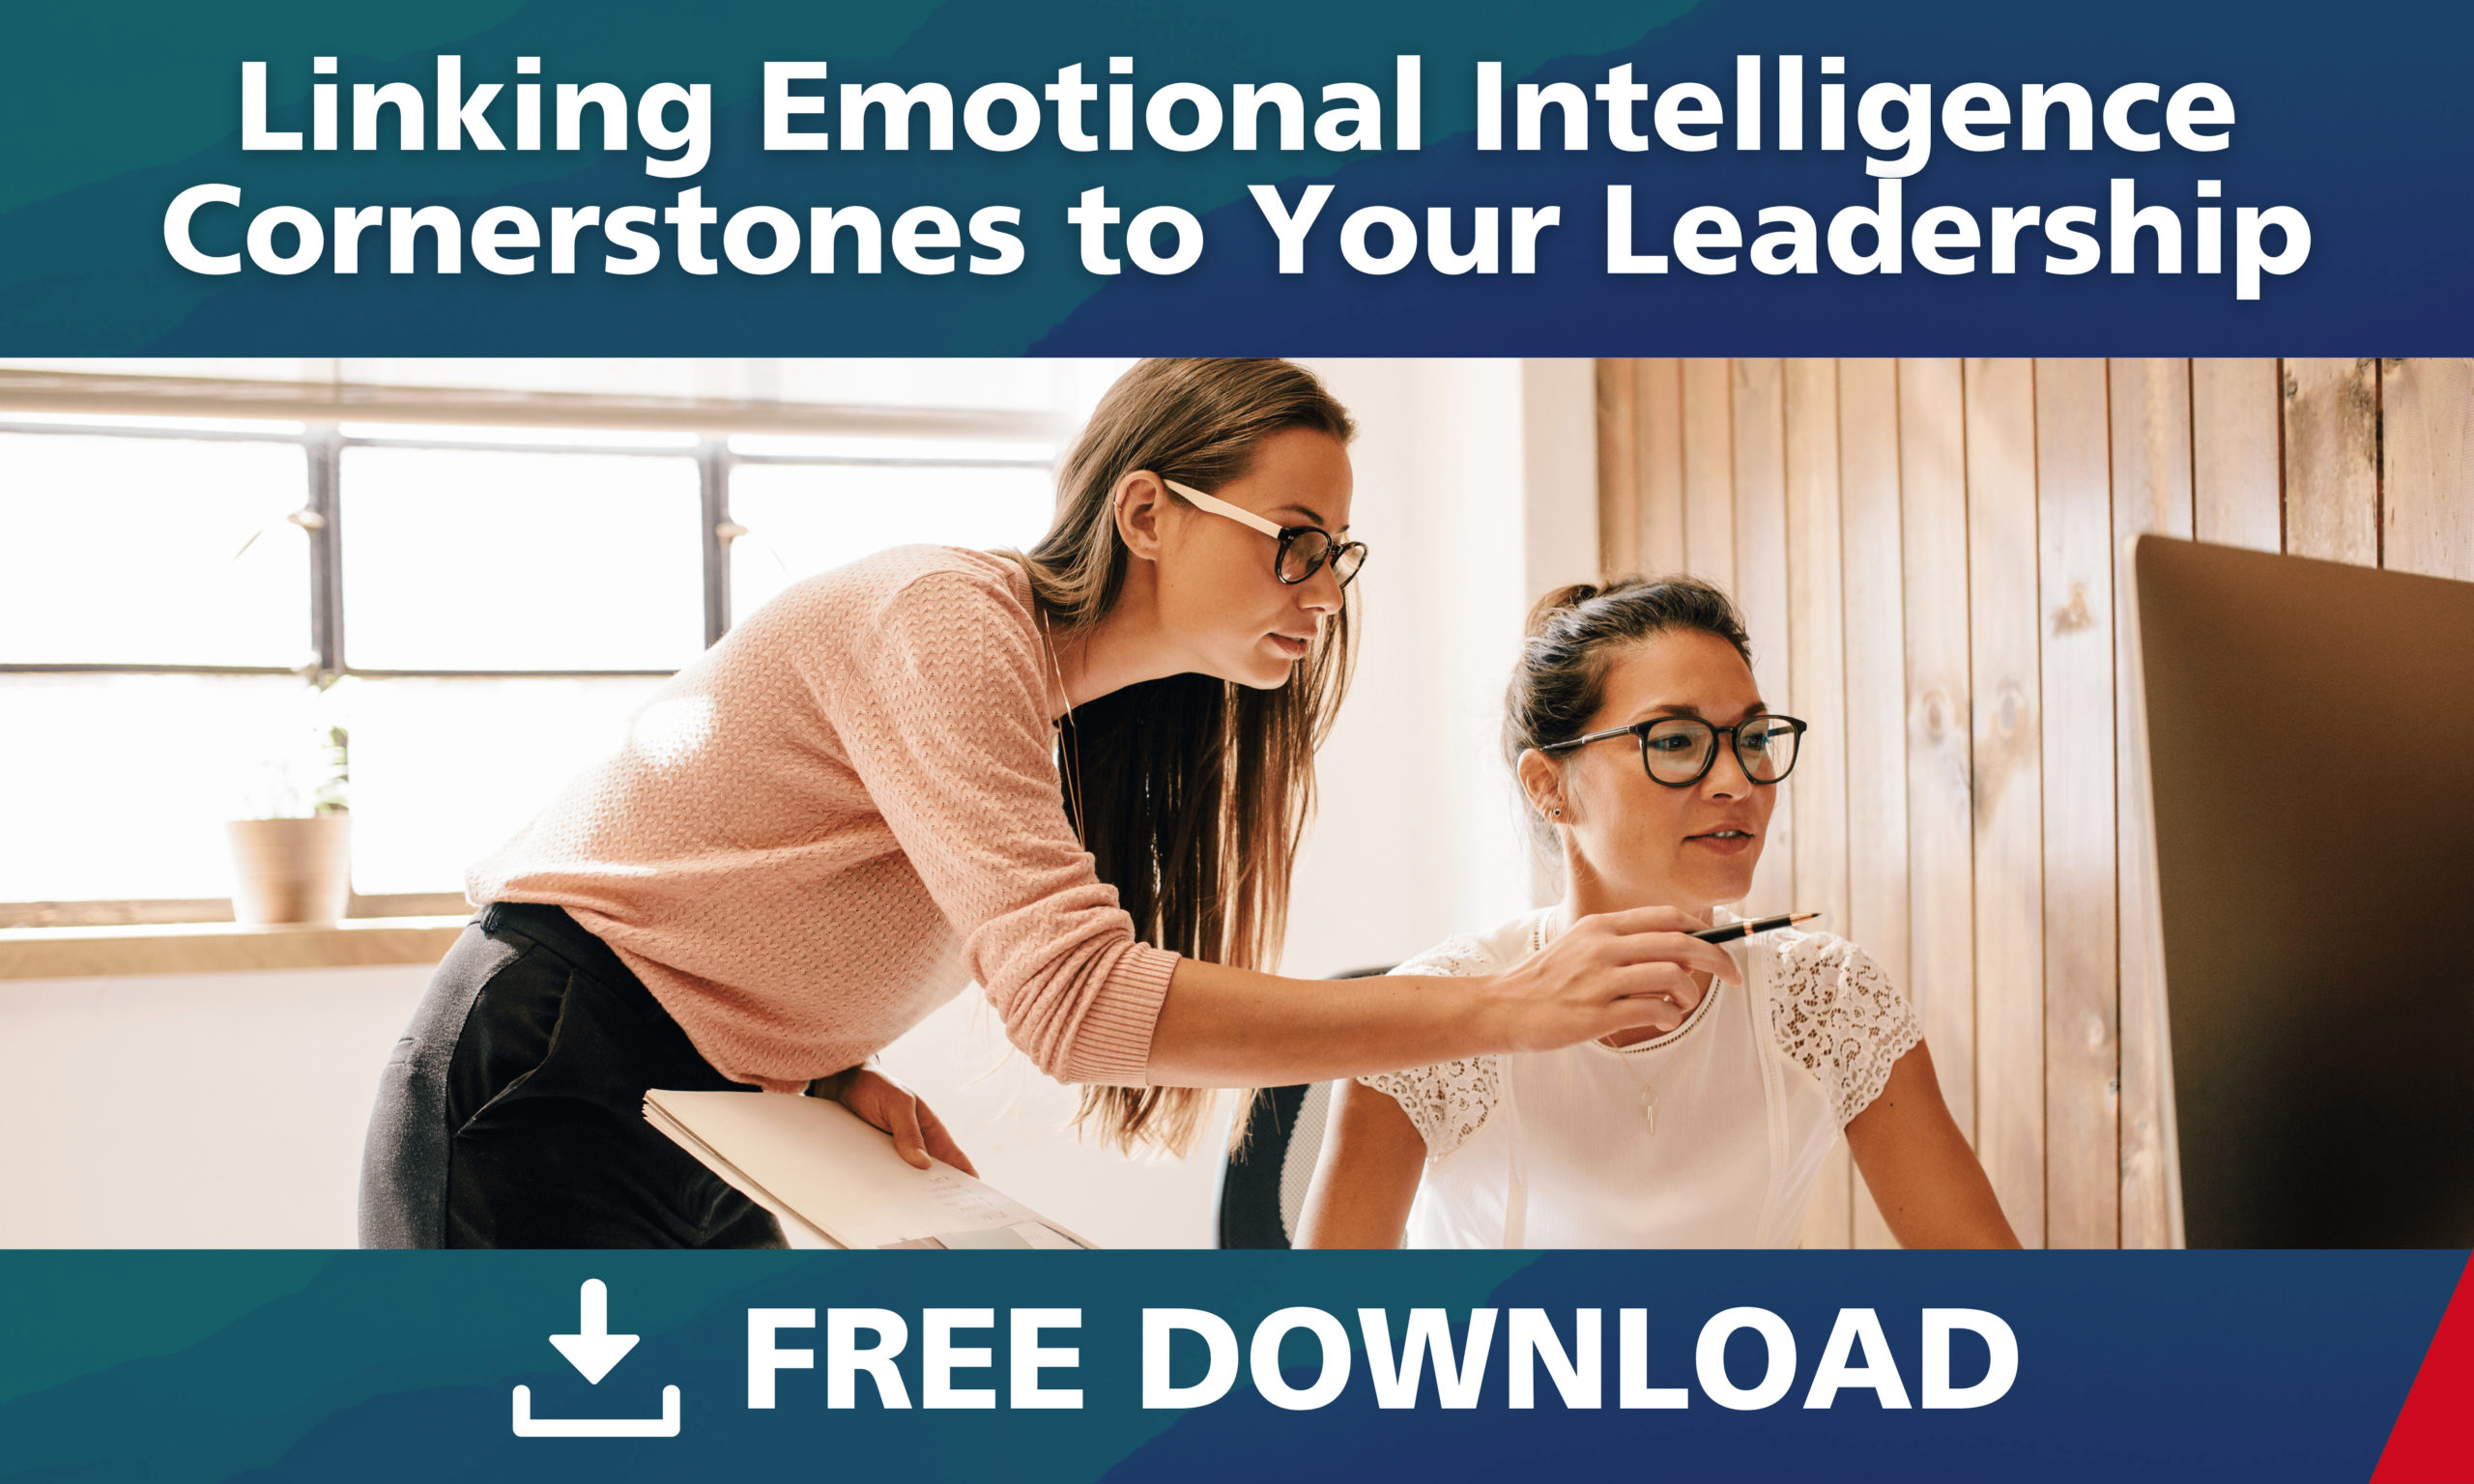 Linking Emotional Intelligence Cornerstones to Your Leadership